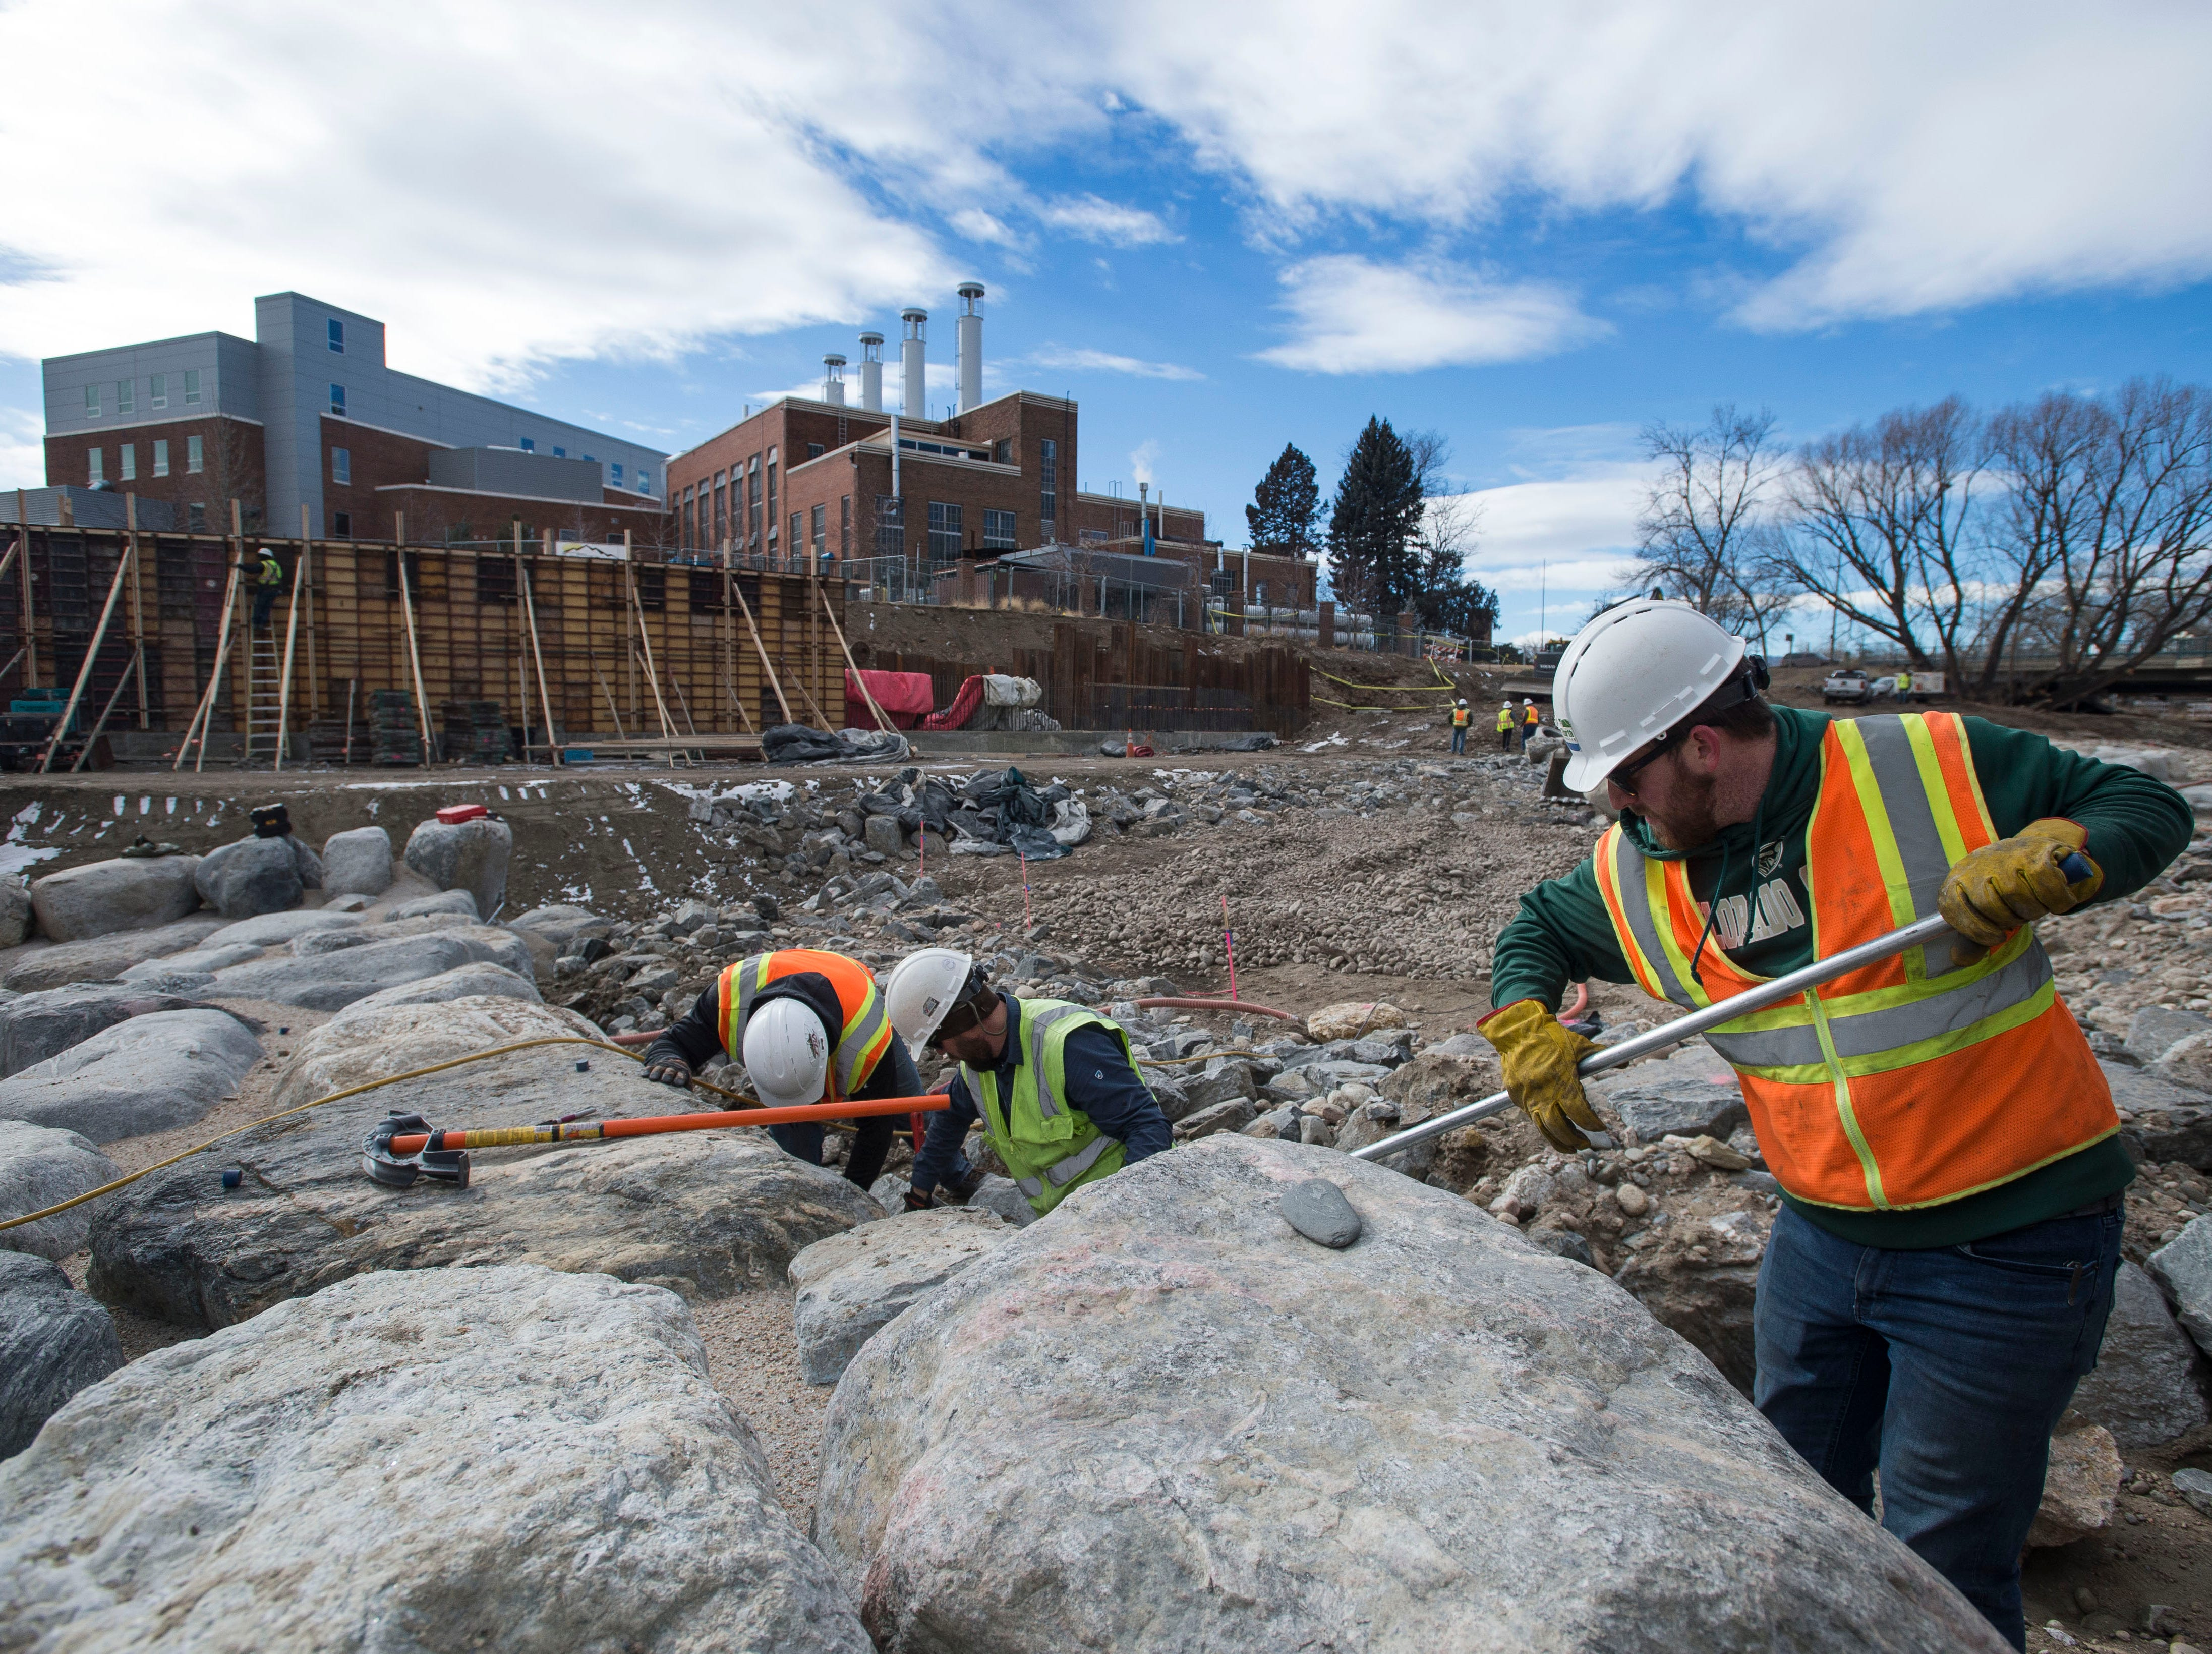 Water & Earth Technologies, Inc. project engineers, from right, Keller Smith, Erik Carlson and Eric Hess work to install a new flow meter at the base of a wave feature on the riverbed of the river on Wednesday, Jan. 23, 2019, at the future site of the Poudre River Whitewater Park just South of North College Avenue in Fort Collins, Colo.